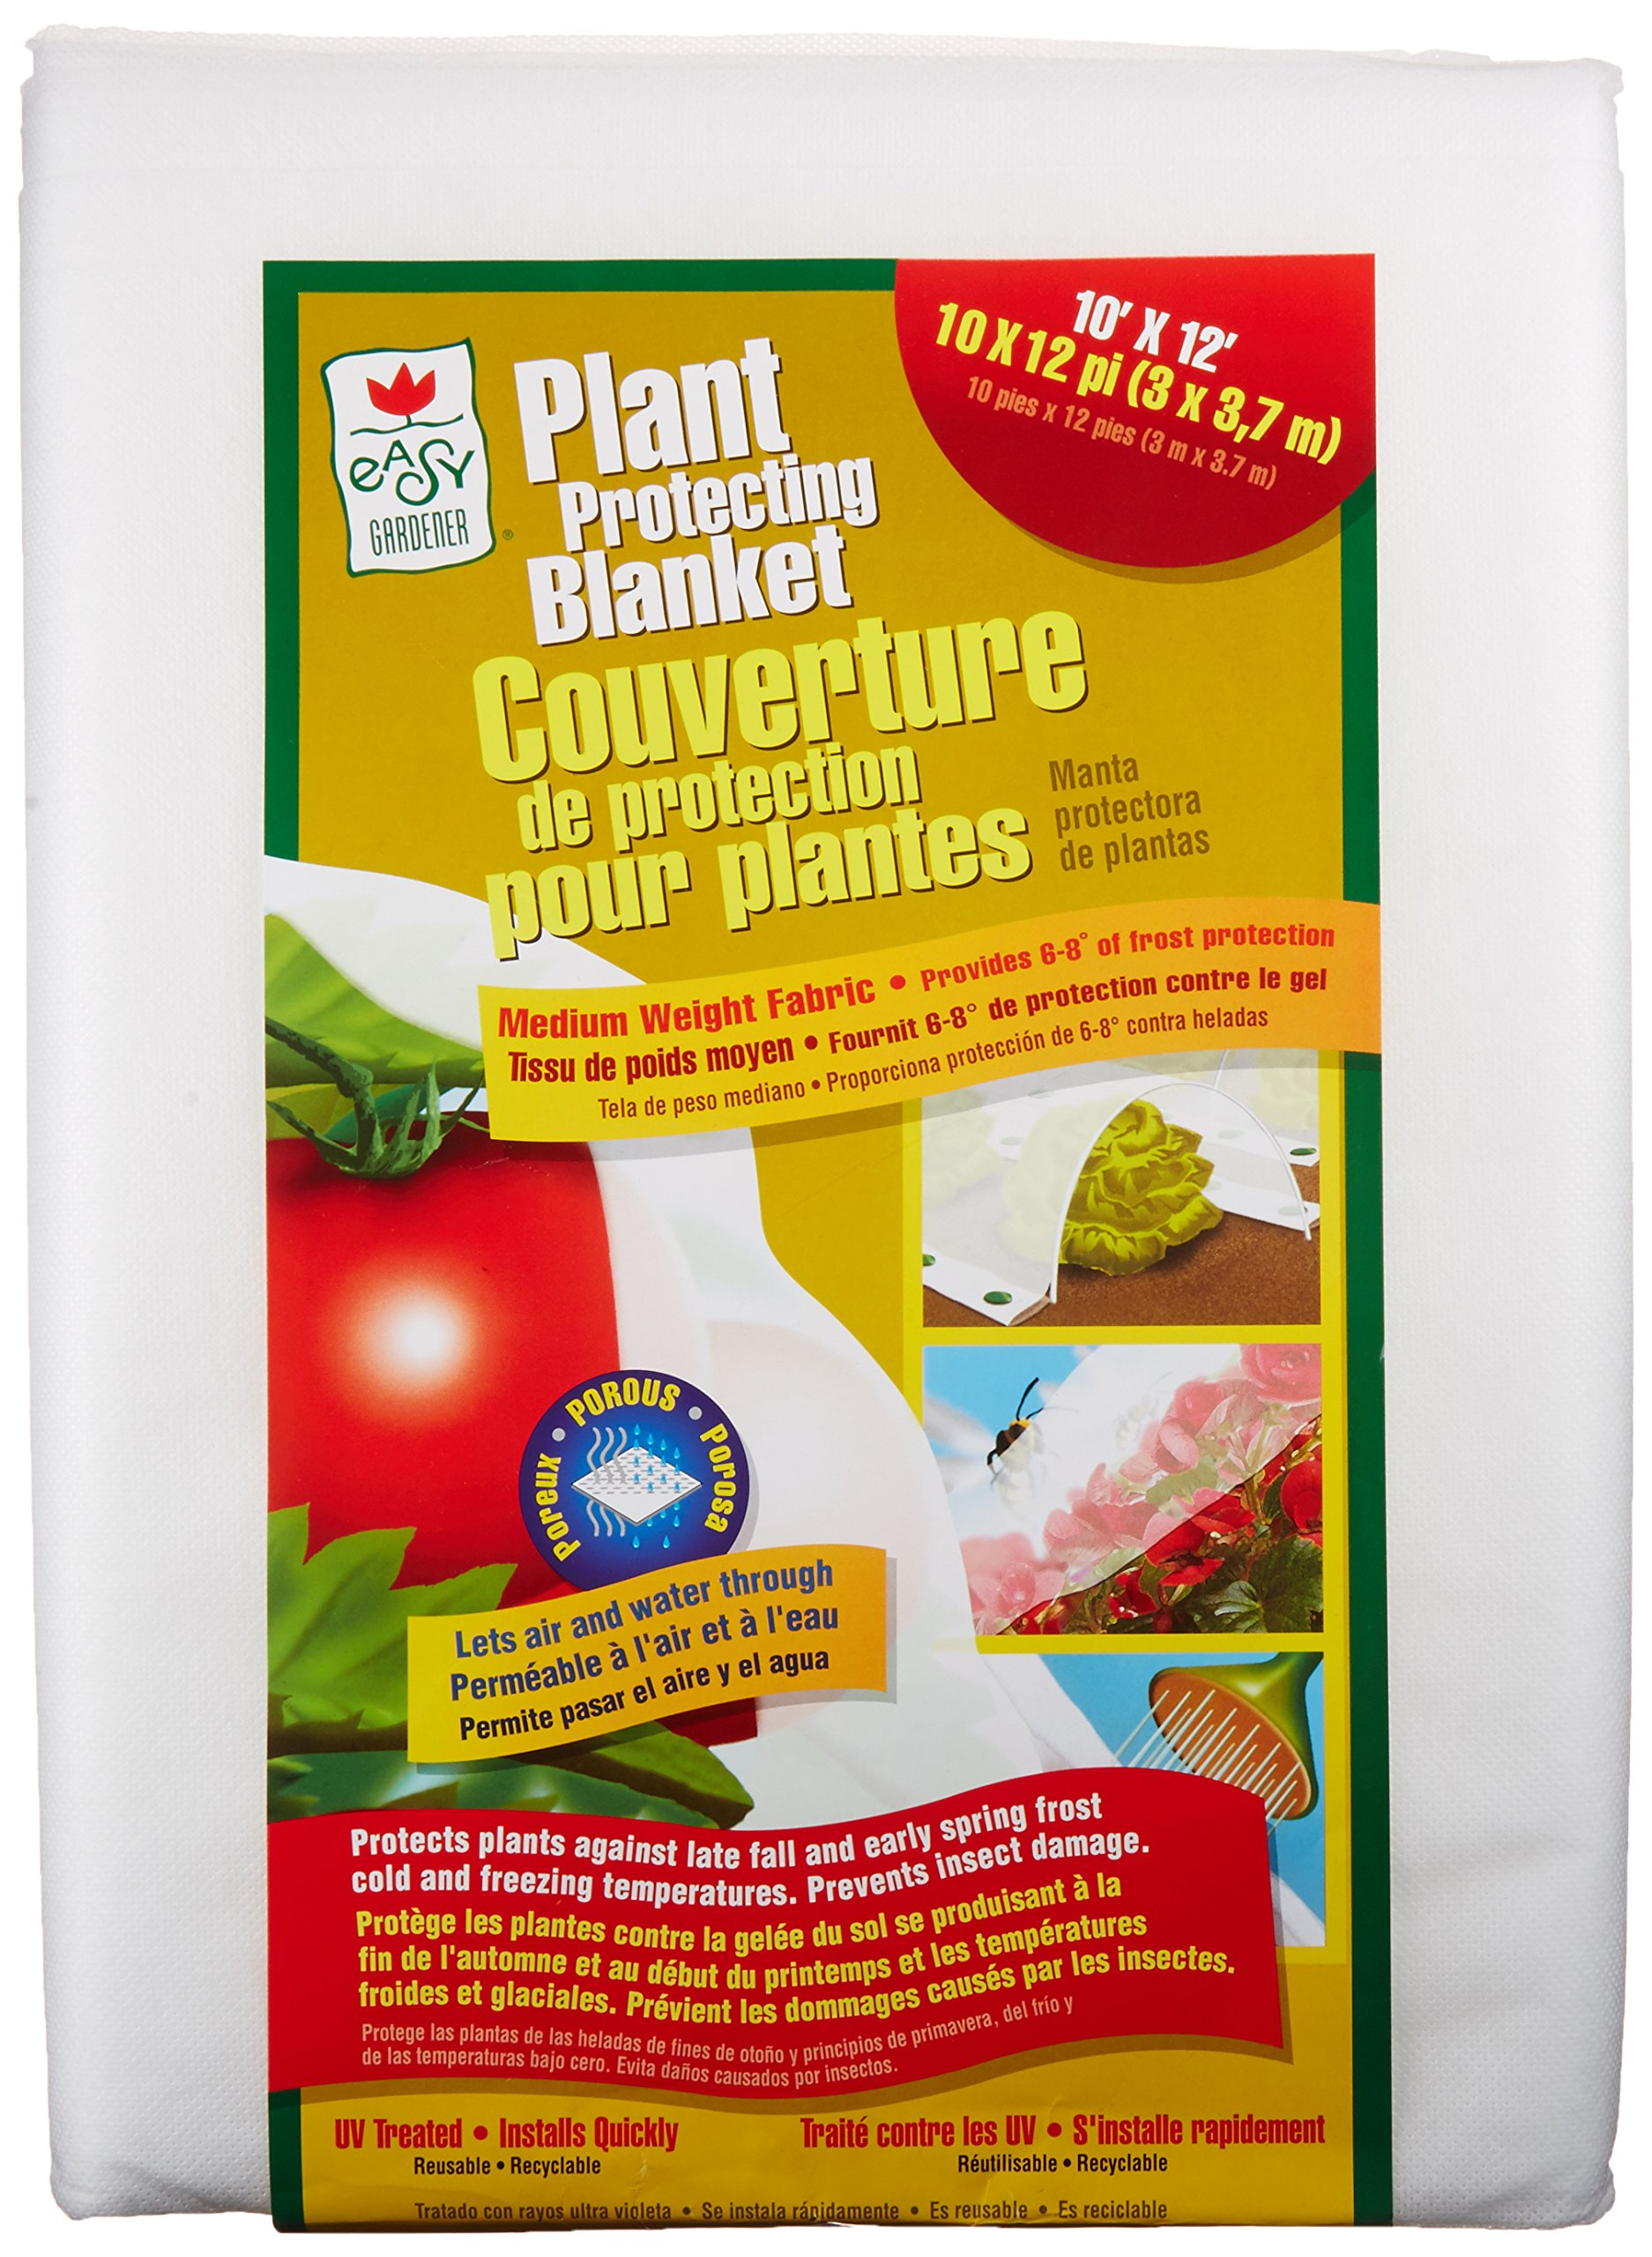 Easy Gardener Plant Protection Blanket For Frost Protection, Seed Germination, Season Extension and Animal Protection, 10 feet x 12 feet by Easy Gardener